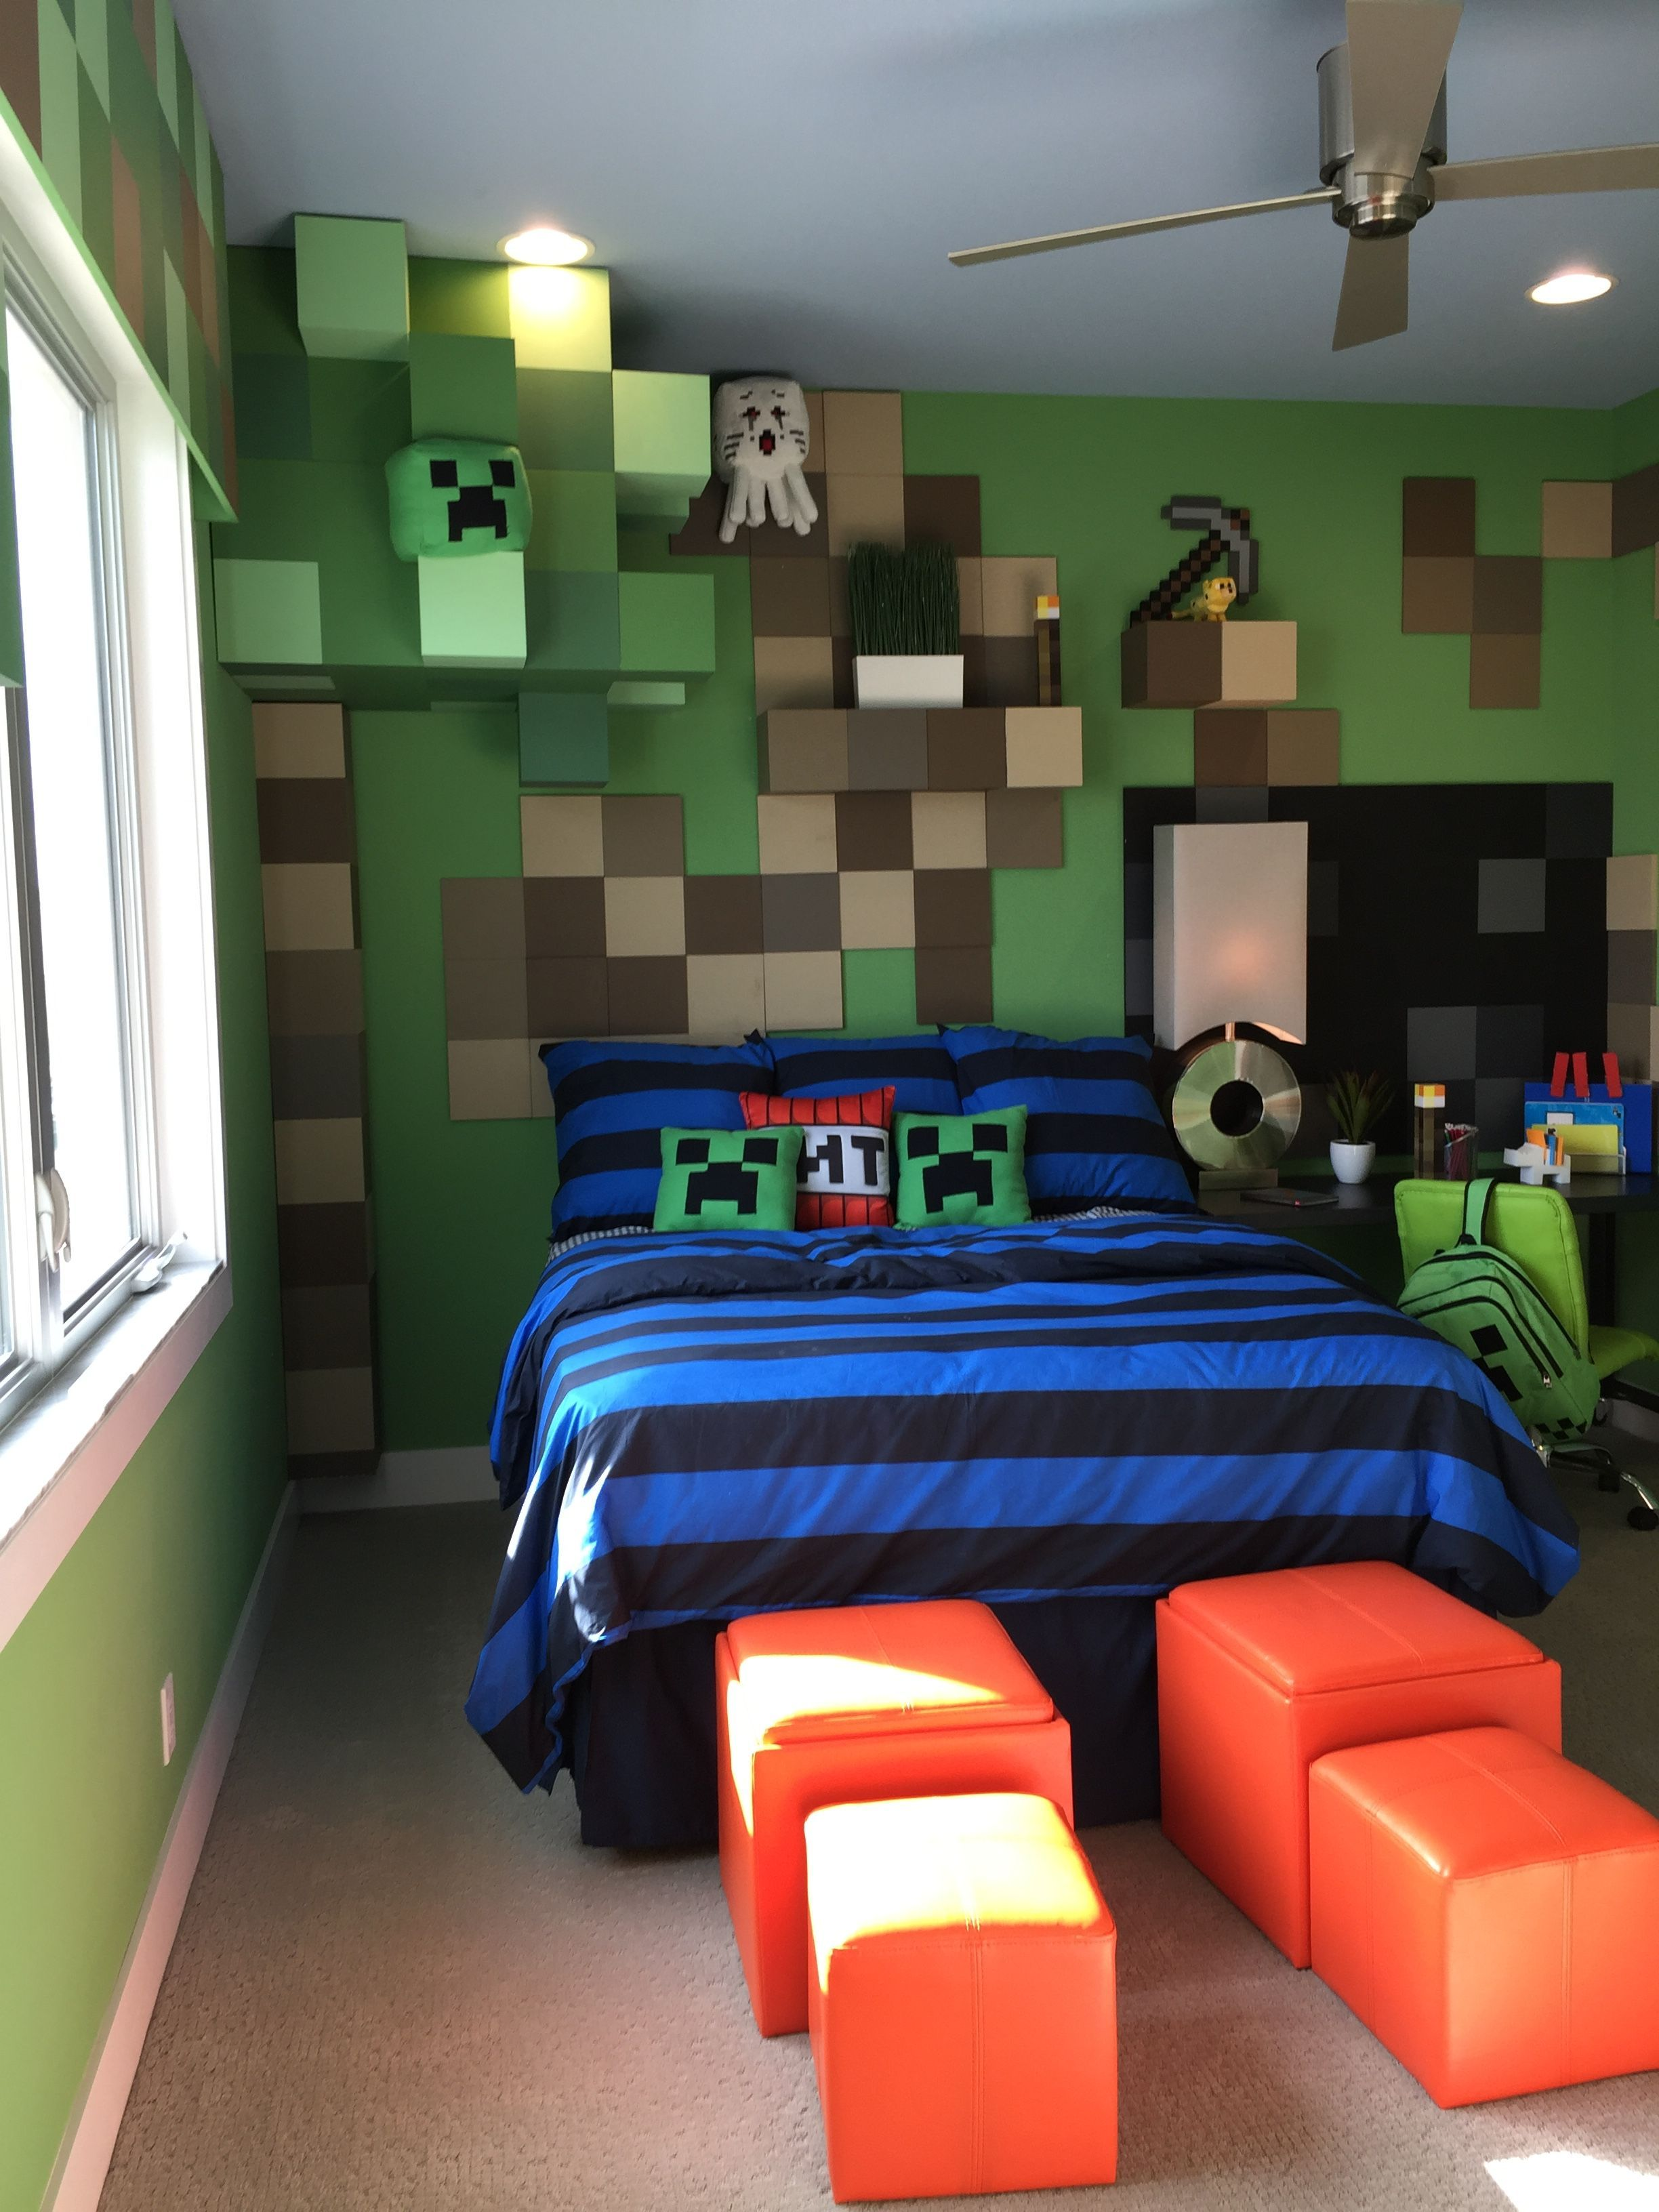 diy minecraft bedroom decor in 2020 | Minecraft bedroom ...